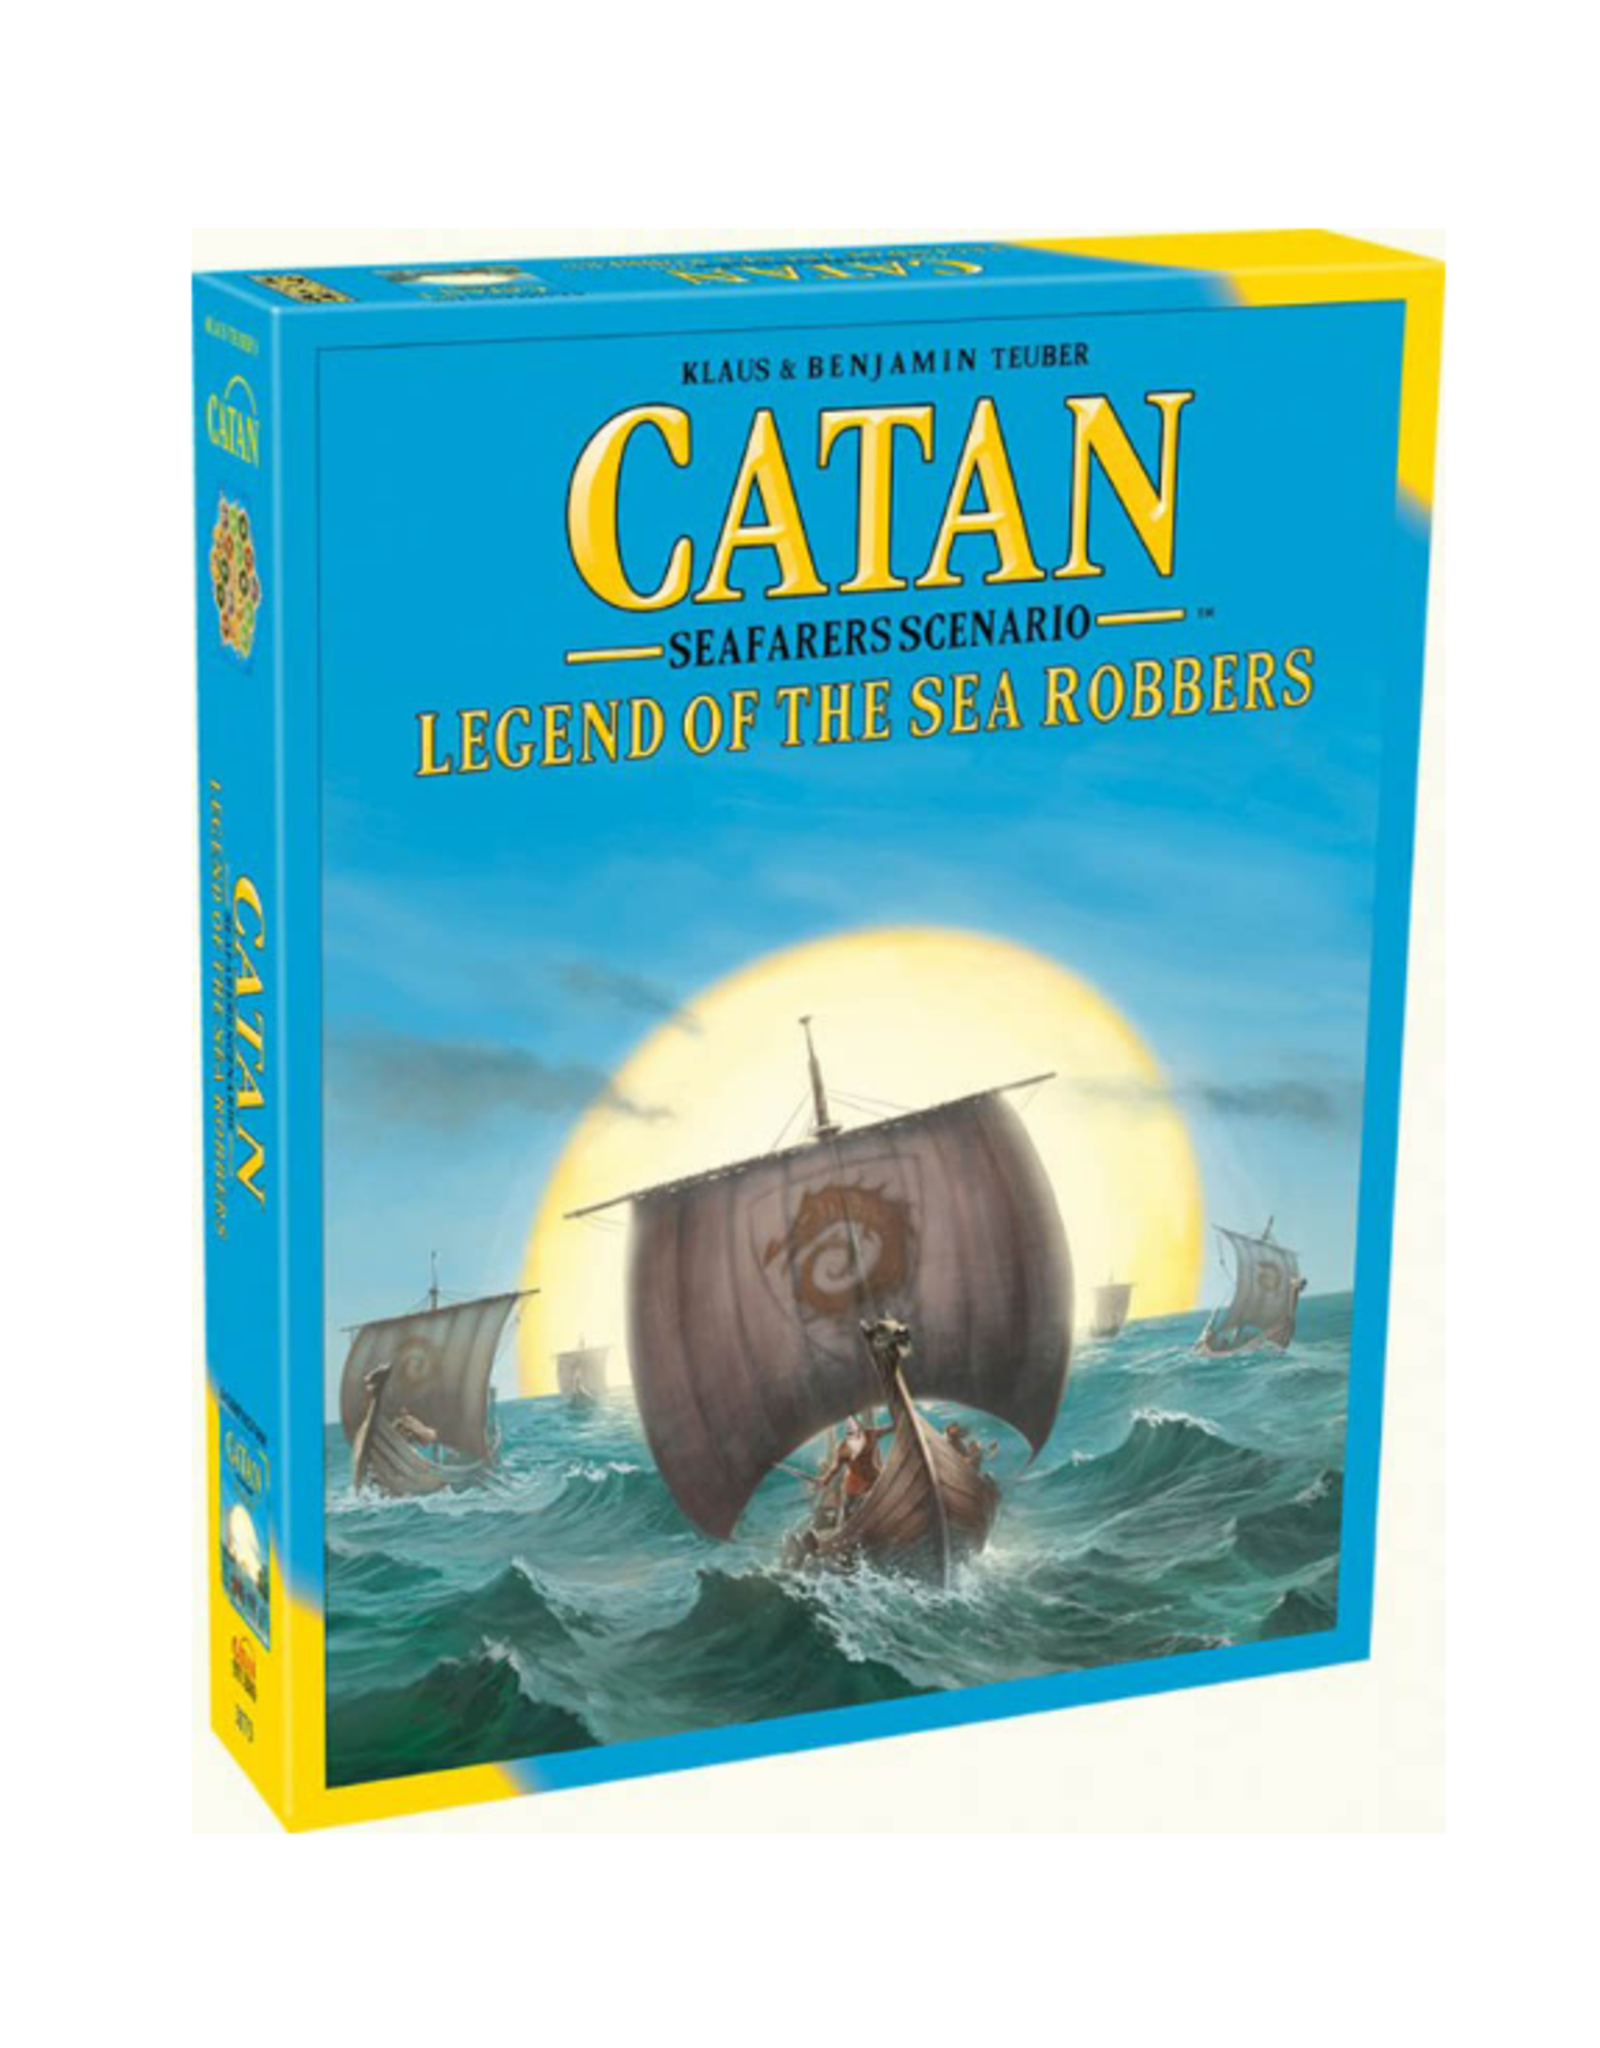 Catan legends of the sea robbers